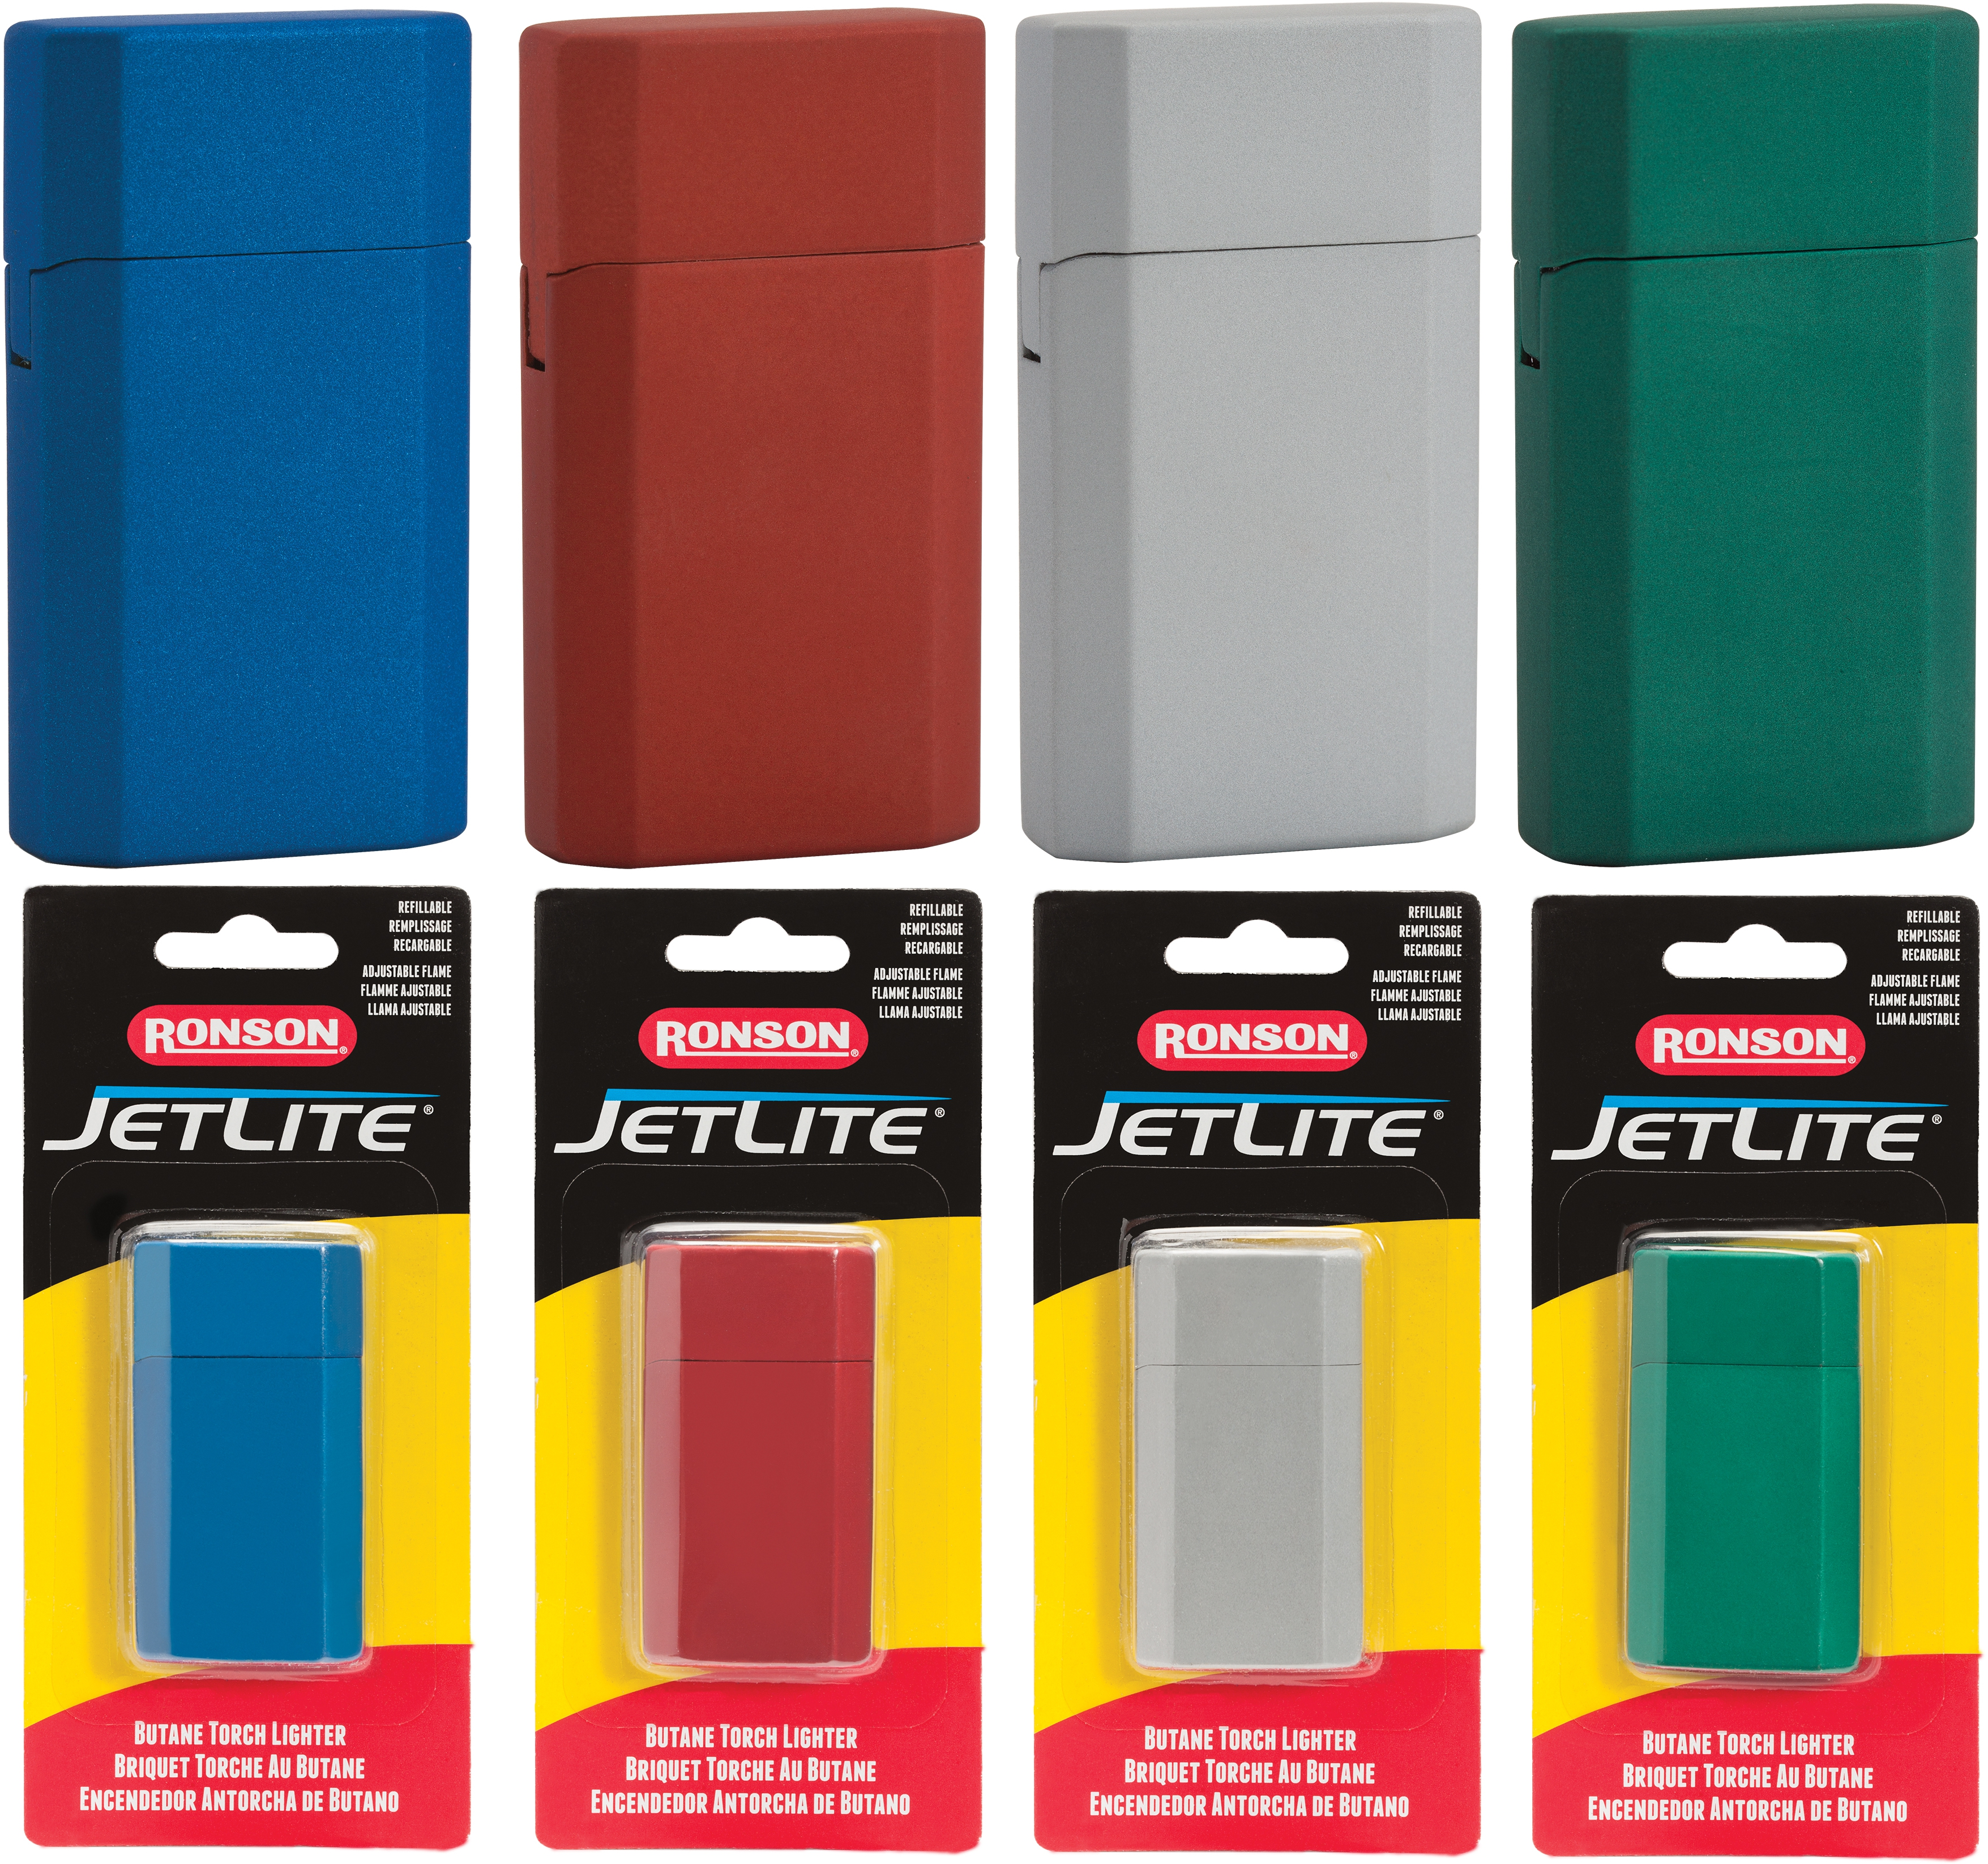 43522 - Ronson Rubber Meralic JetLite Blister Card Assortment